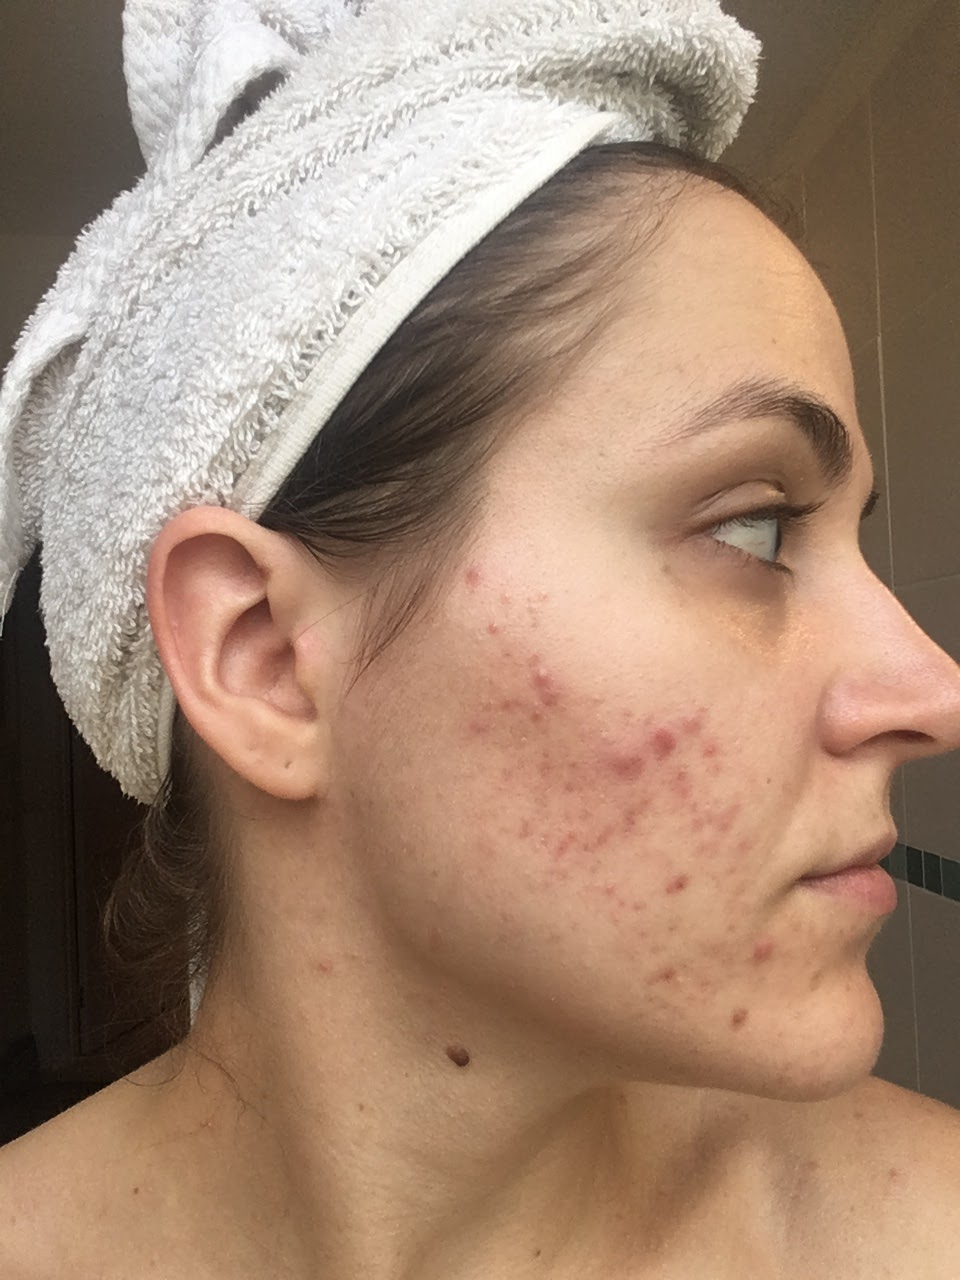 My Journey with Severe Acne - Roaccutane. Maggie May